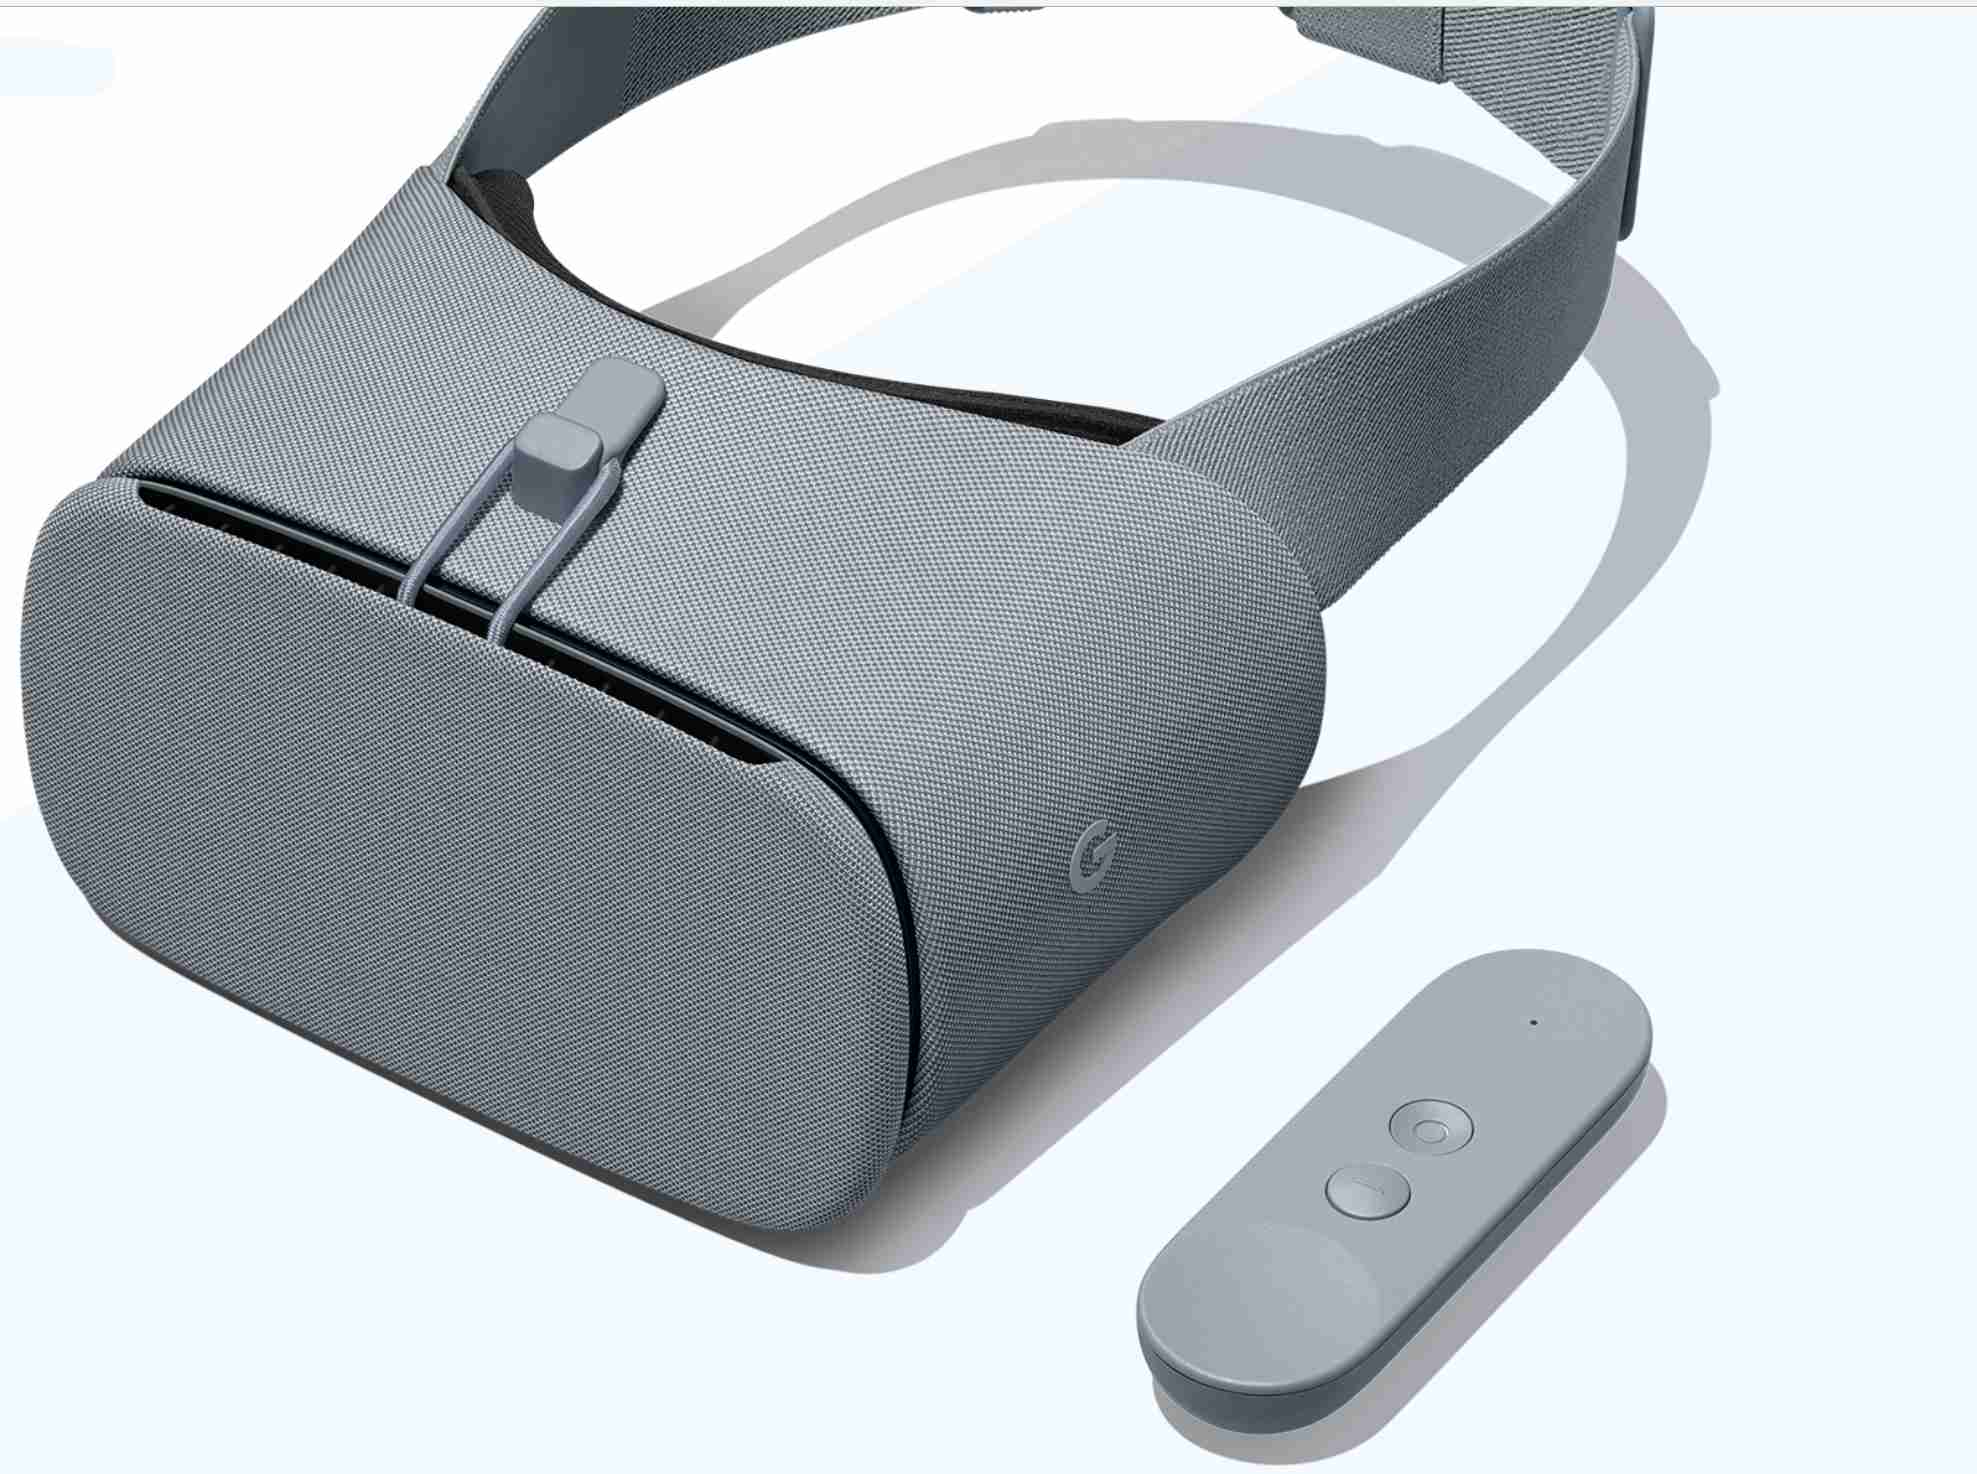 38d32a41c71 Google Daydream View Headset with controller